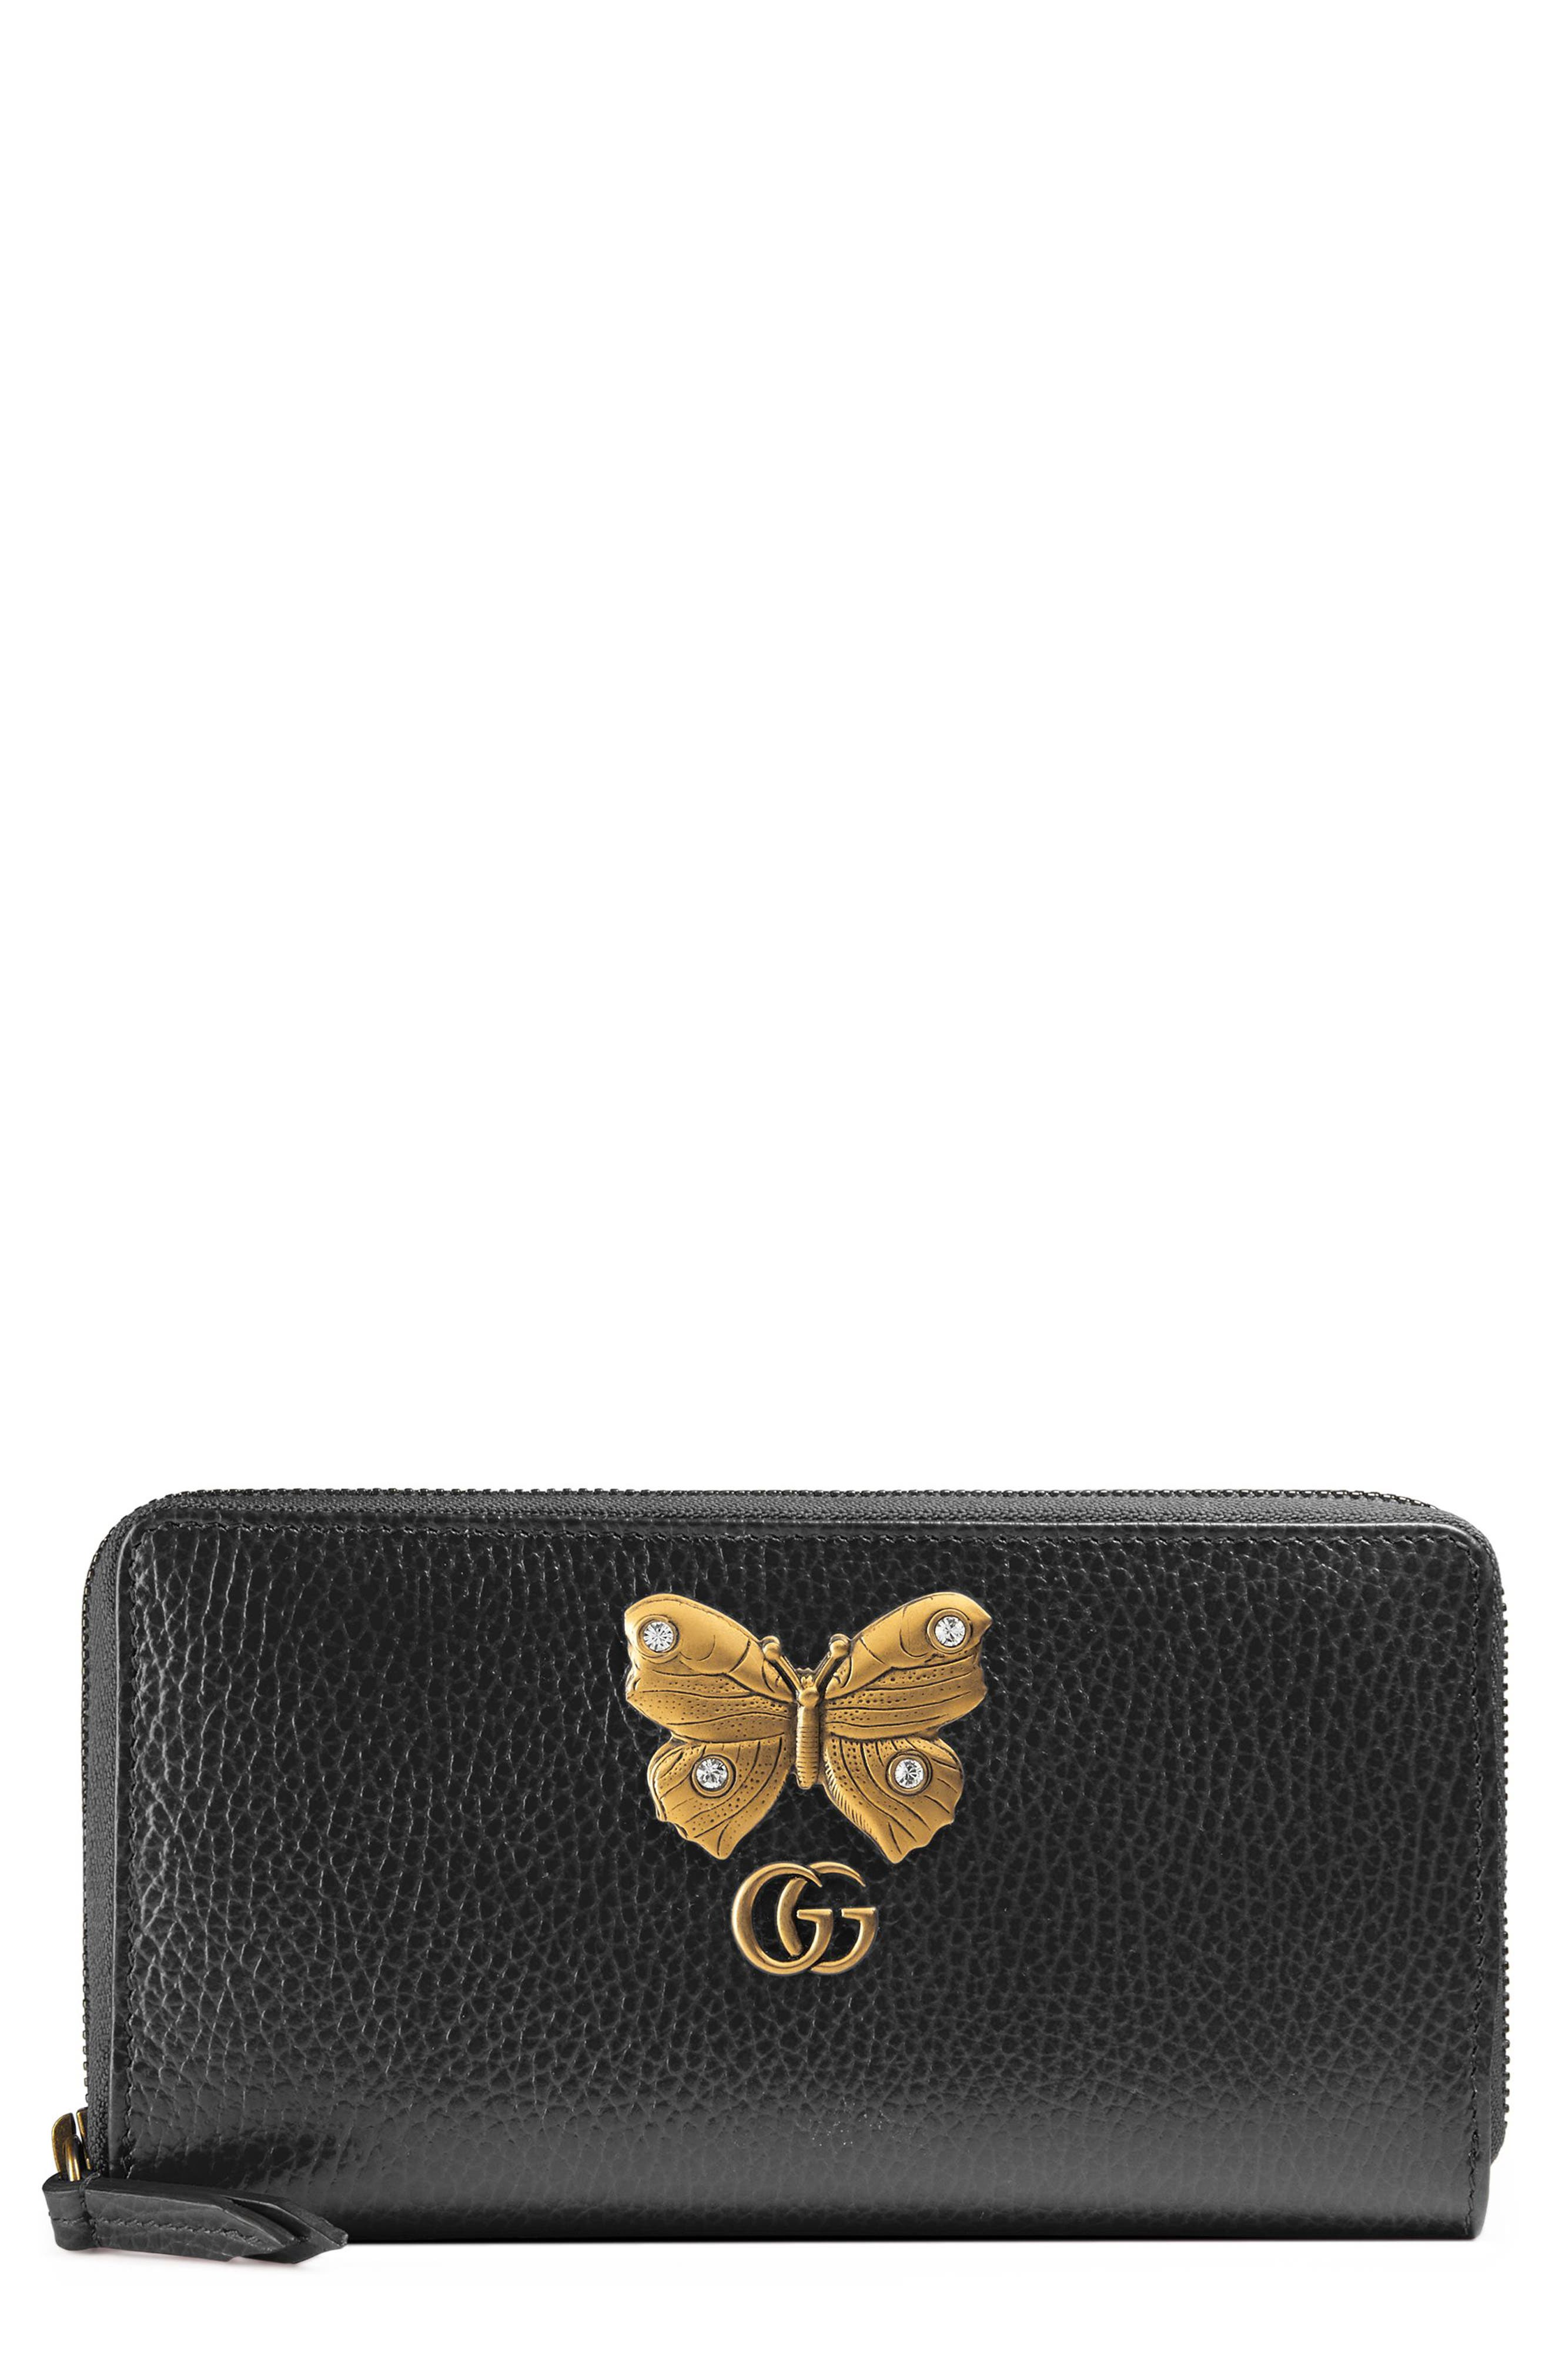 Farfalla Zip Around Leather Wallet,                         Main,                         color, NERO/ CRYSTAL